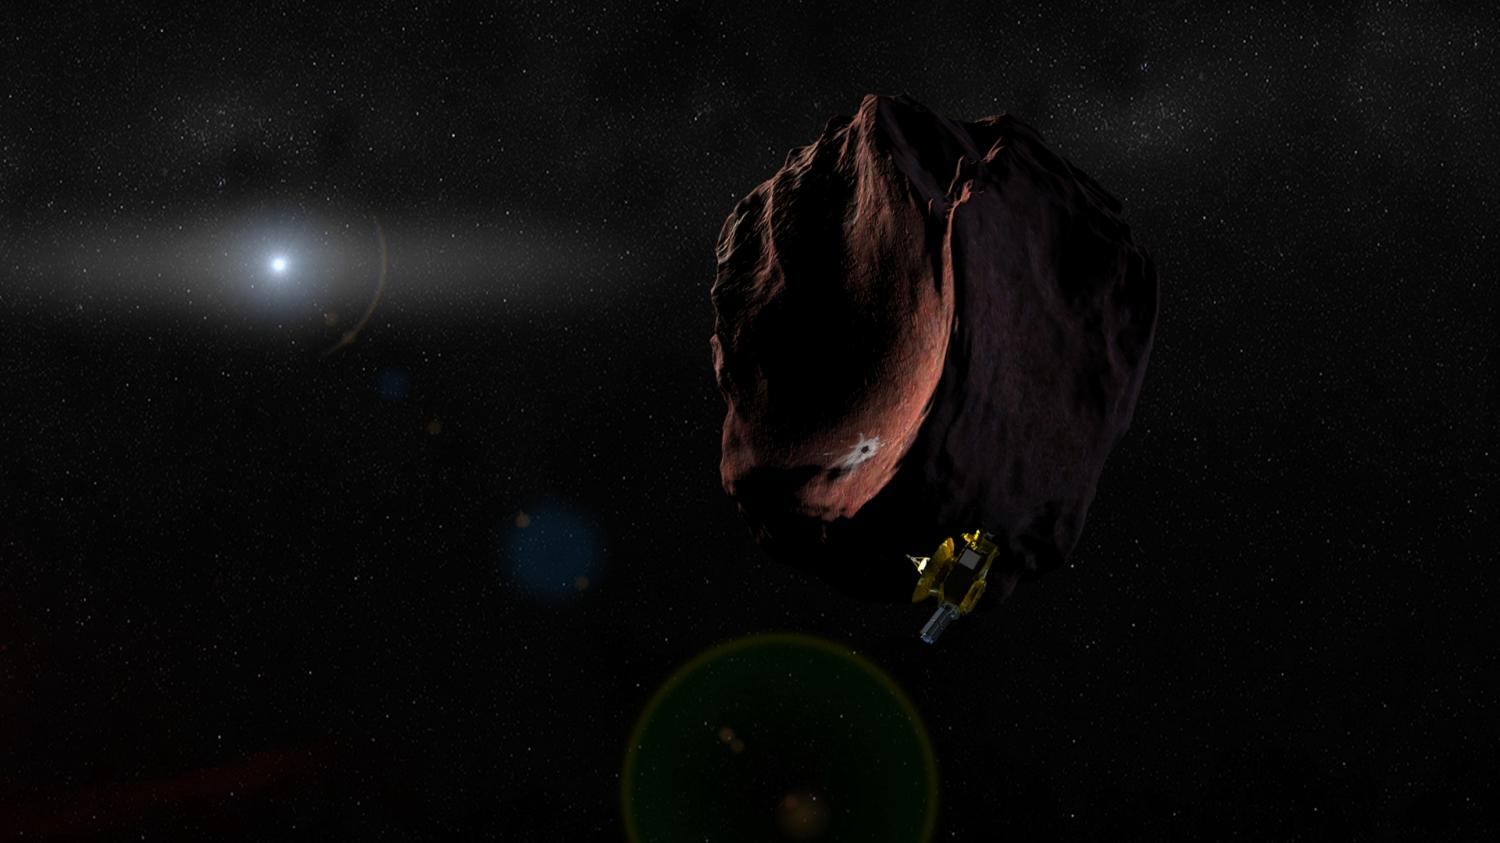 The conference's topics detailed continued study of Pluto and its family of natural satellites. Image Credit: NASA/Johns Hopkins University Applied Physics Laboratory/Southwest Research Institute/Steve Gribben